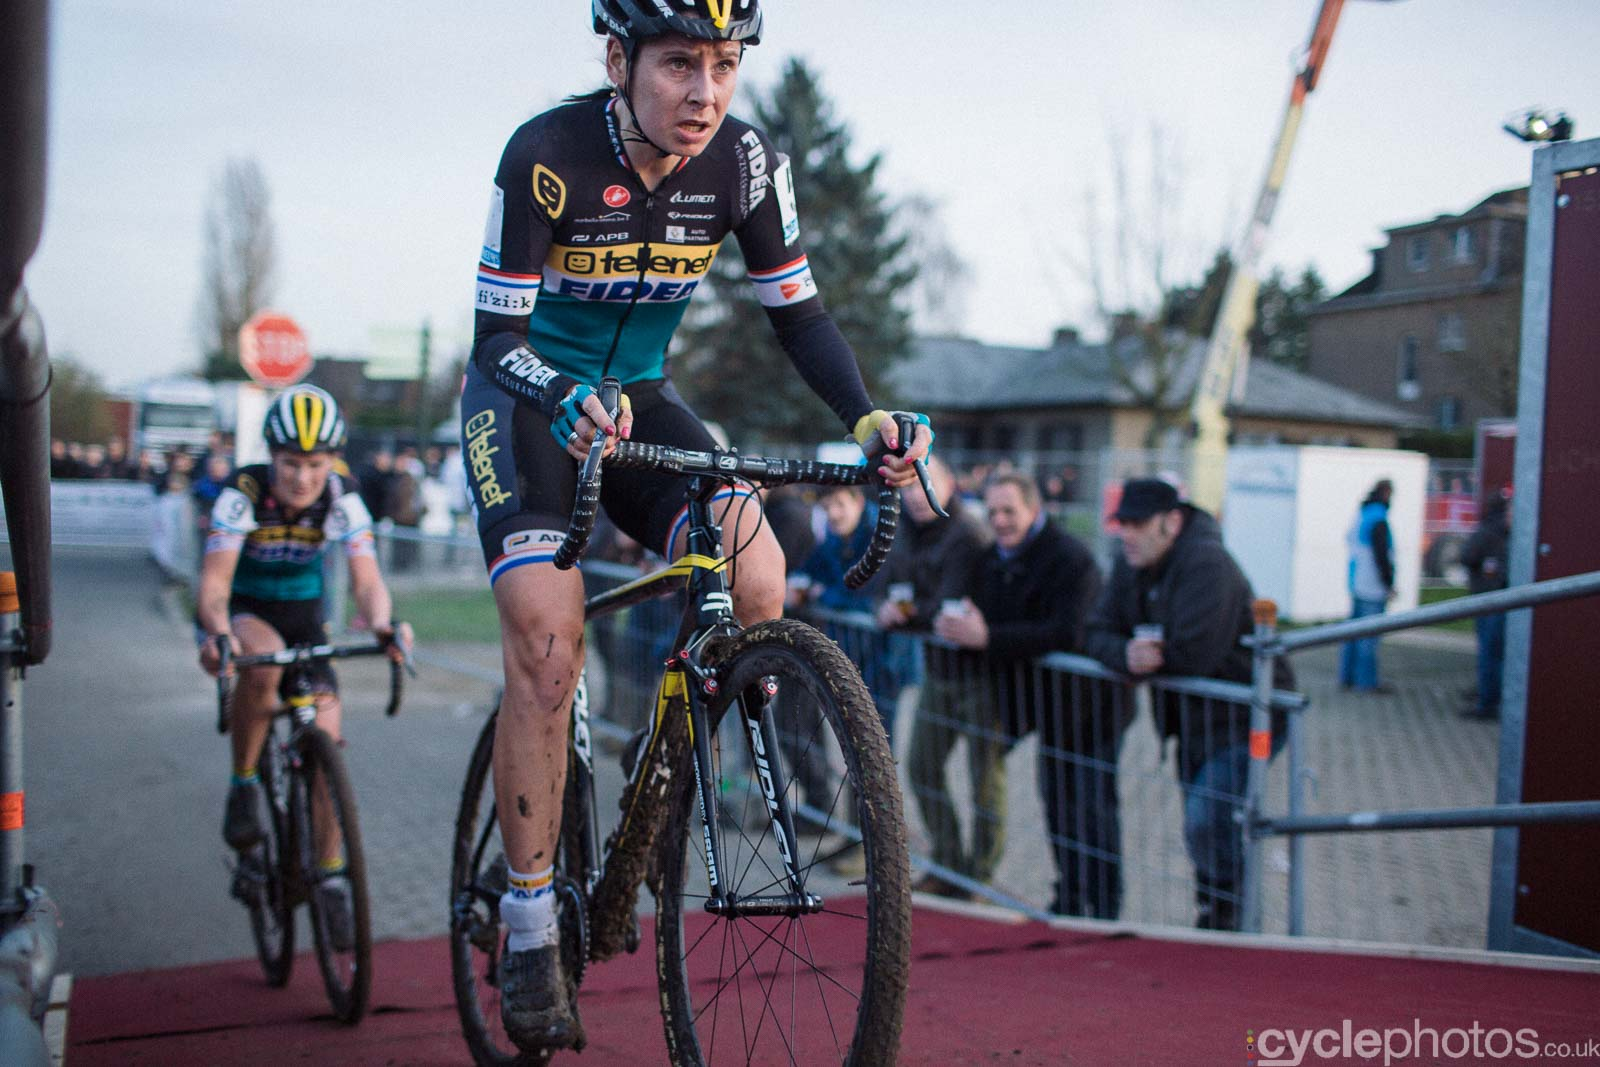 2015-cyclephotos-cyclocross-diegem-160127-nikki-harris